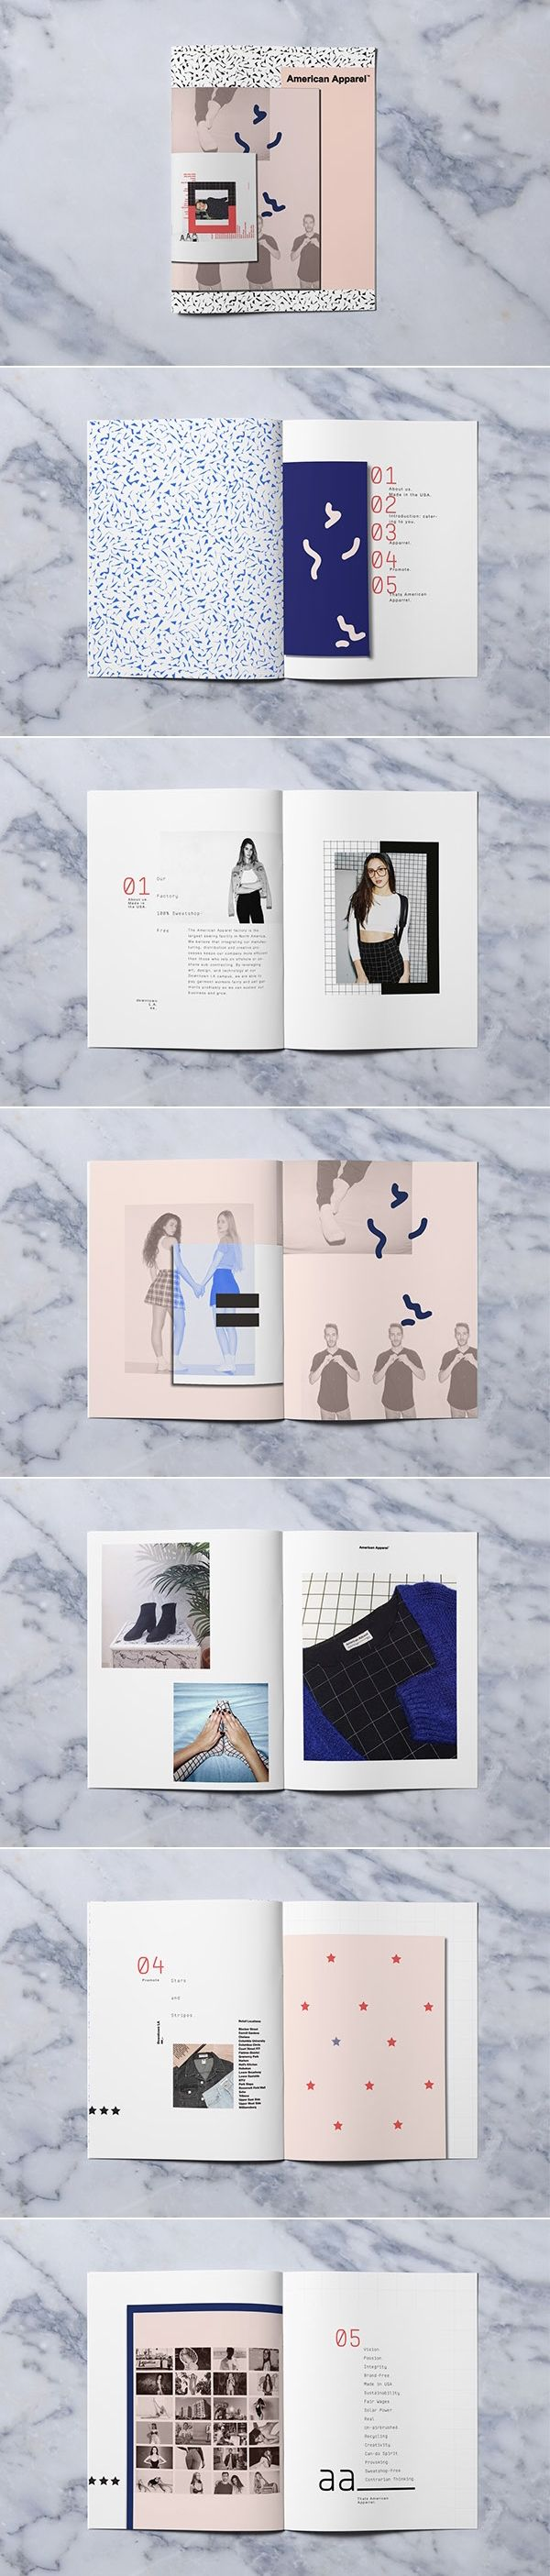 aminulv i will design book ebook interior or layout for 10 on